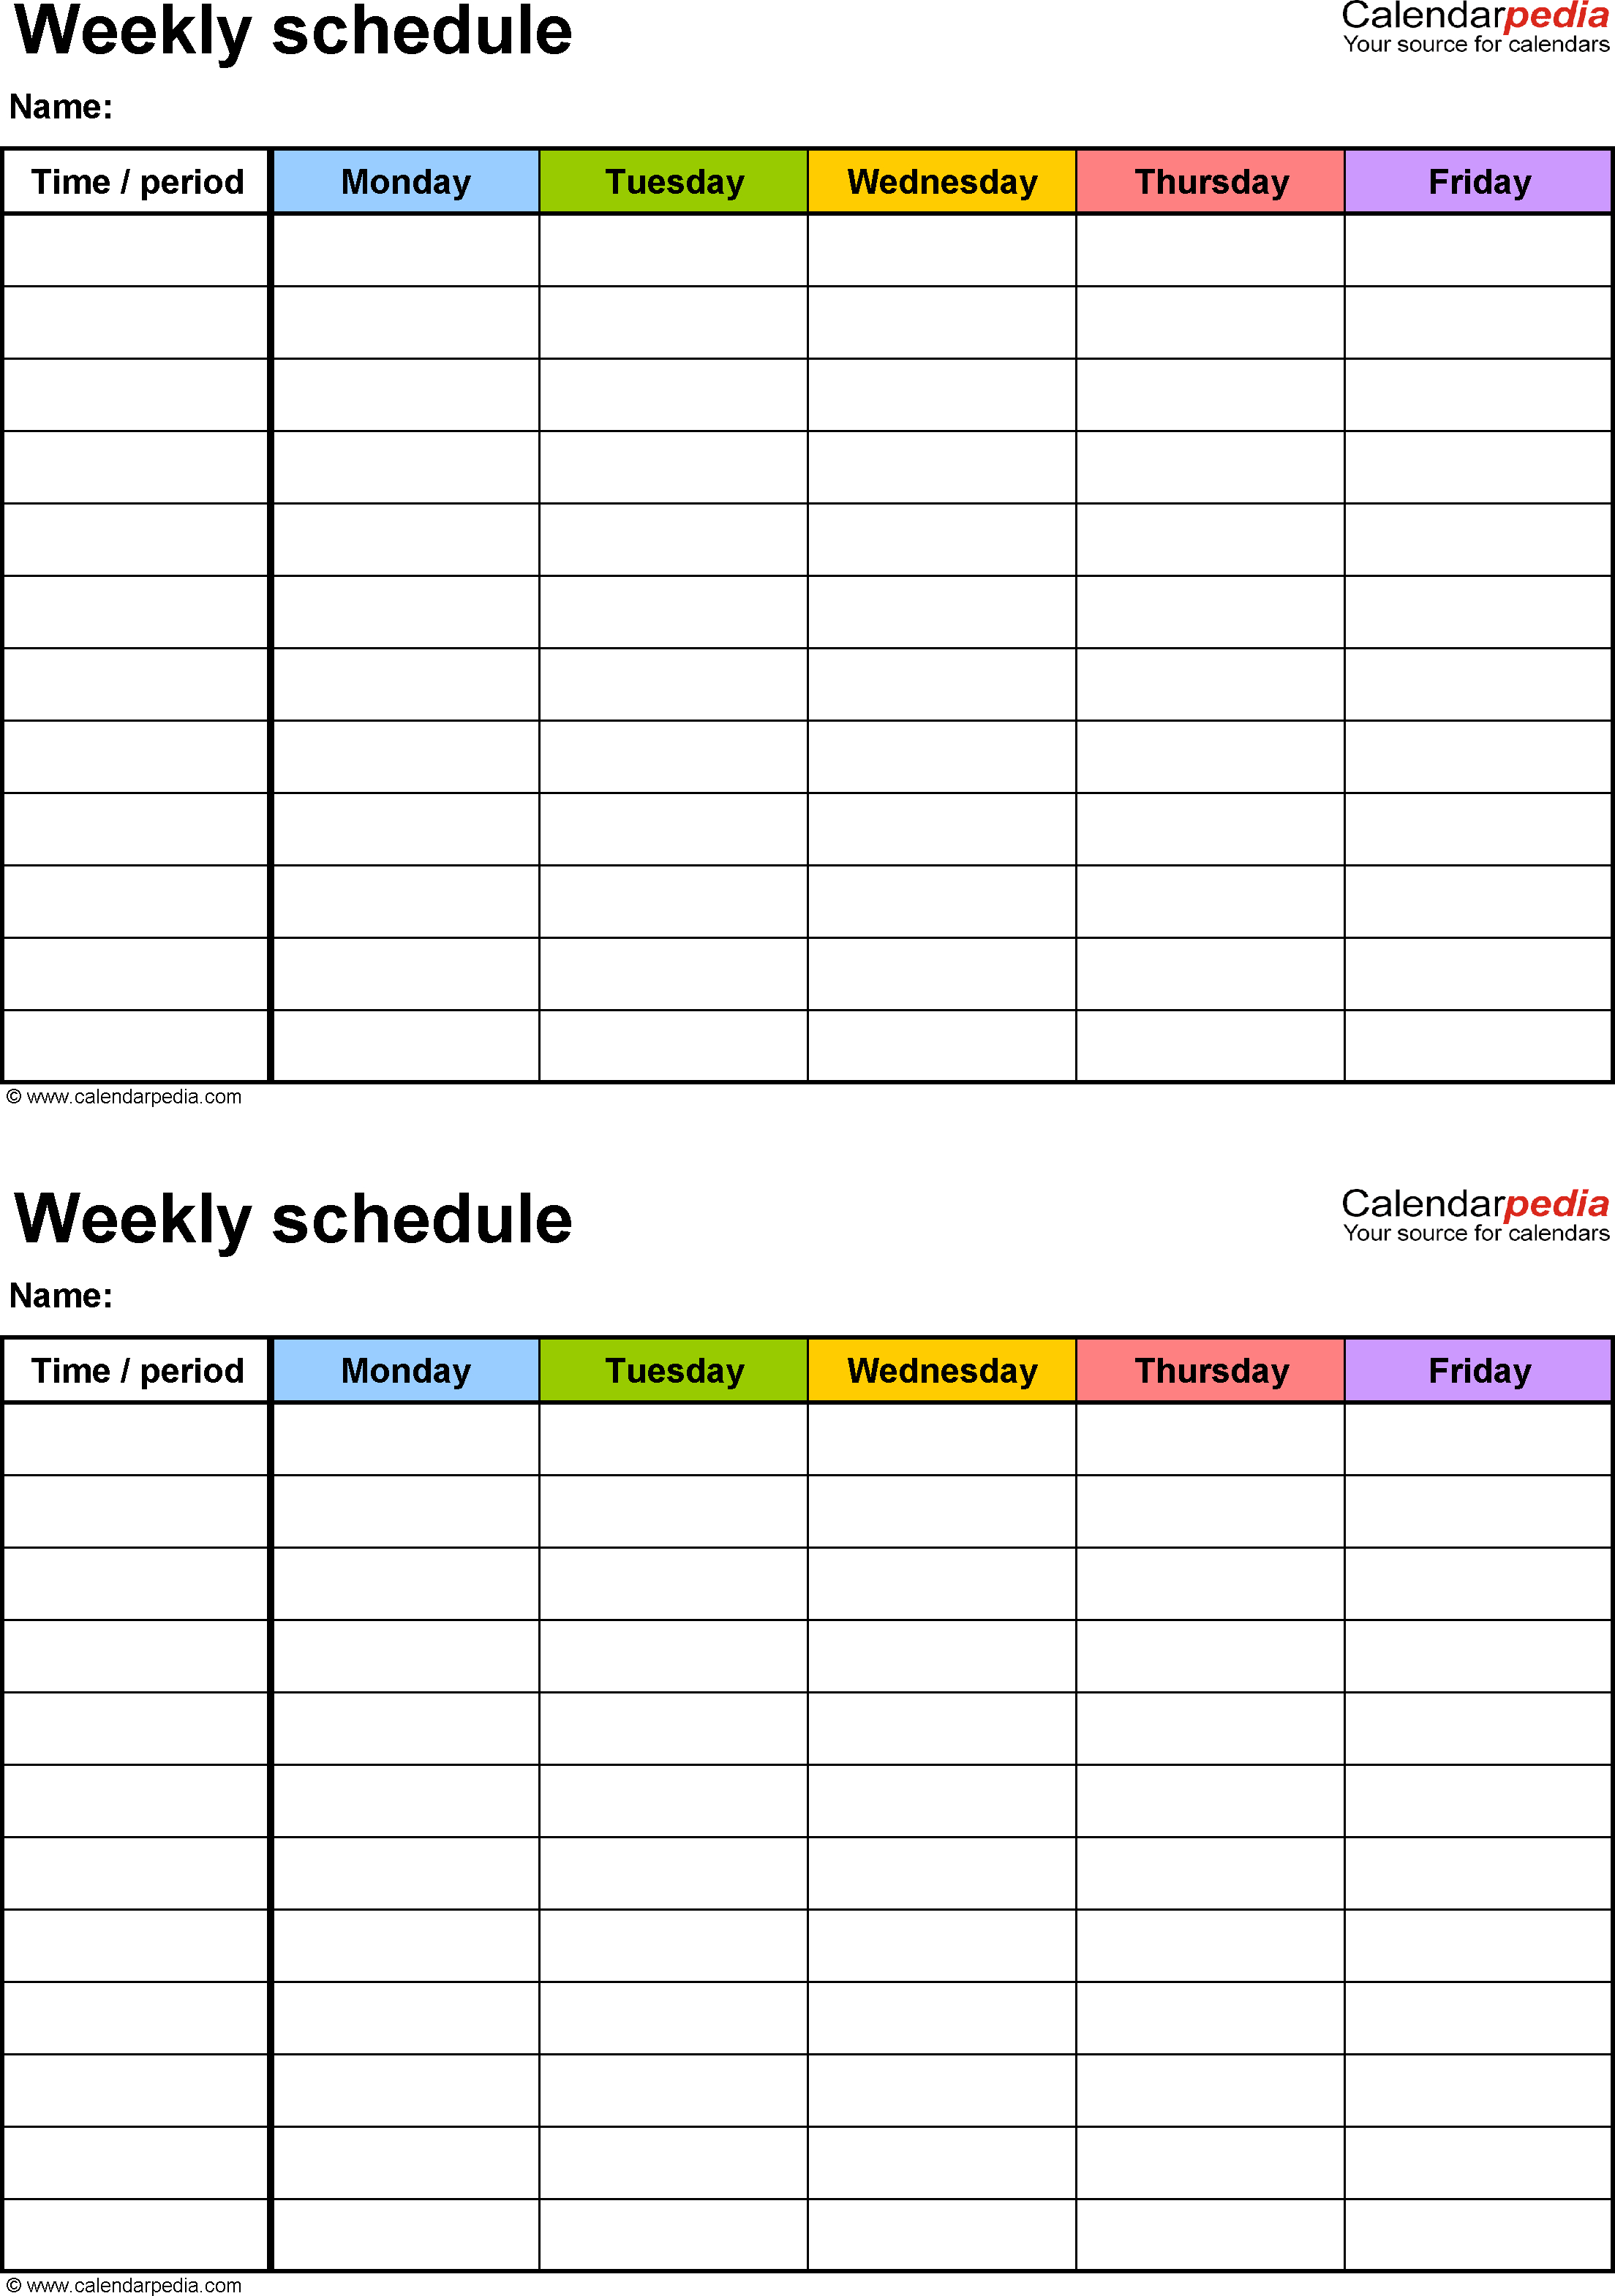 Free Weekly Schedule Templates For Word - 18 Templates in 5 Day Weekly Calendar Template